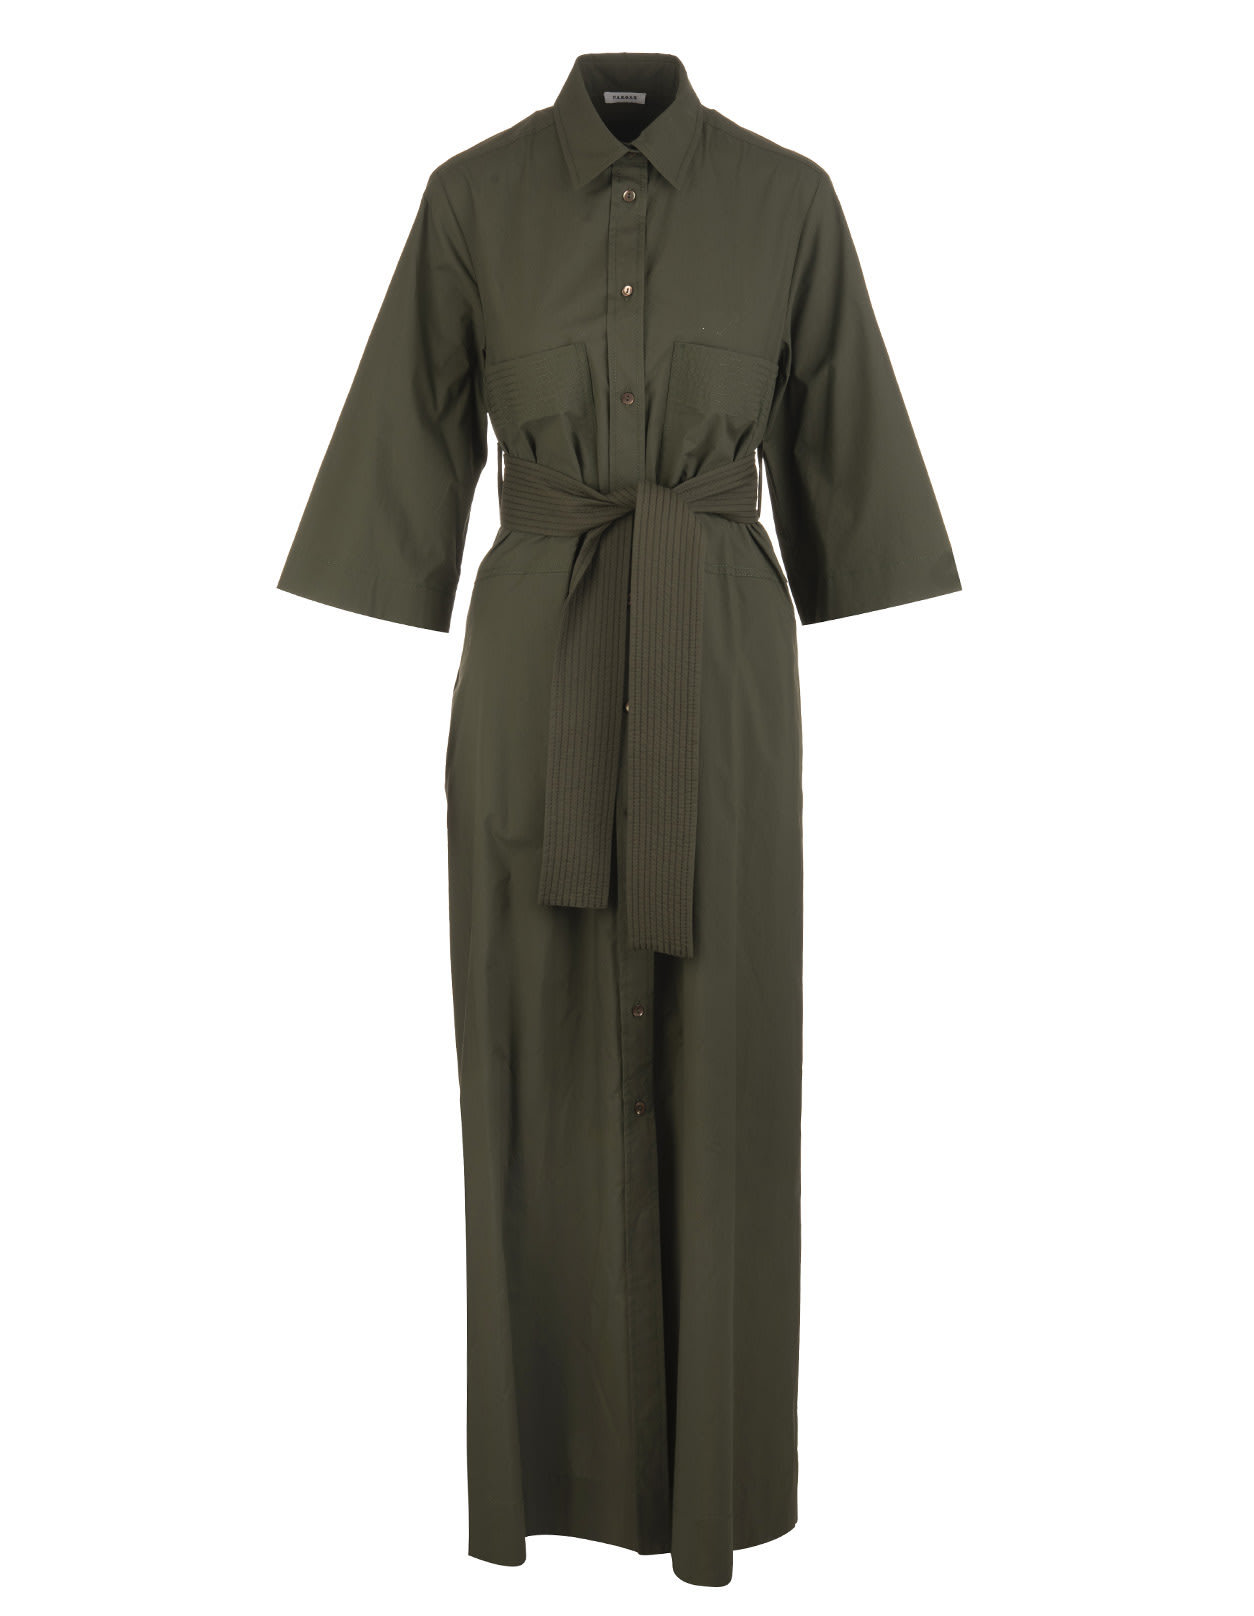 A.R.O.H. long shirt dress in military green cotton with classic collar, front buttoning, 3/4 wide sleeve, belt in tone with front knot and soft skirt with pockets and front opening. Composition: 100% Cotton